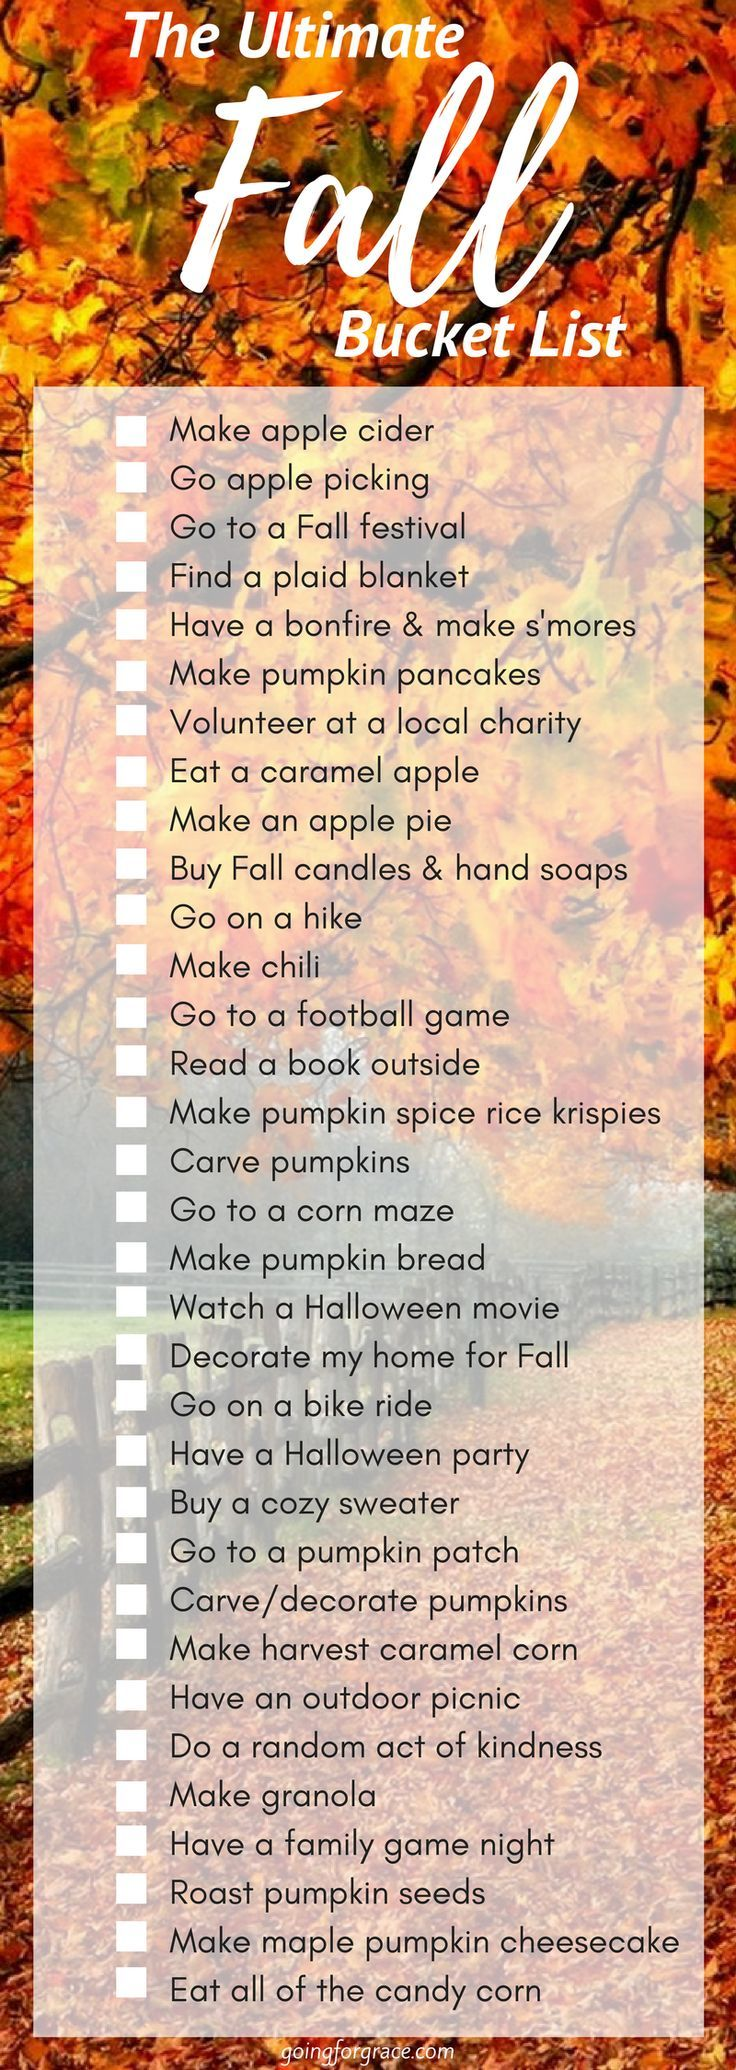 Ultimate fall bucket list ❤️ #fallseason